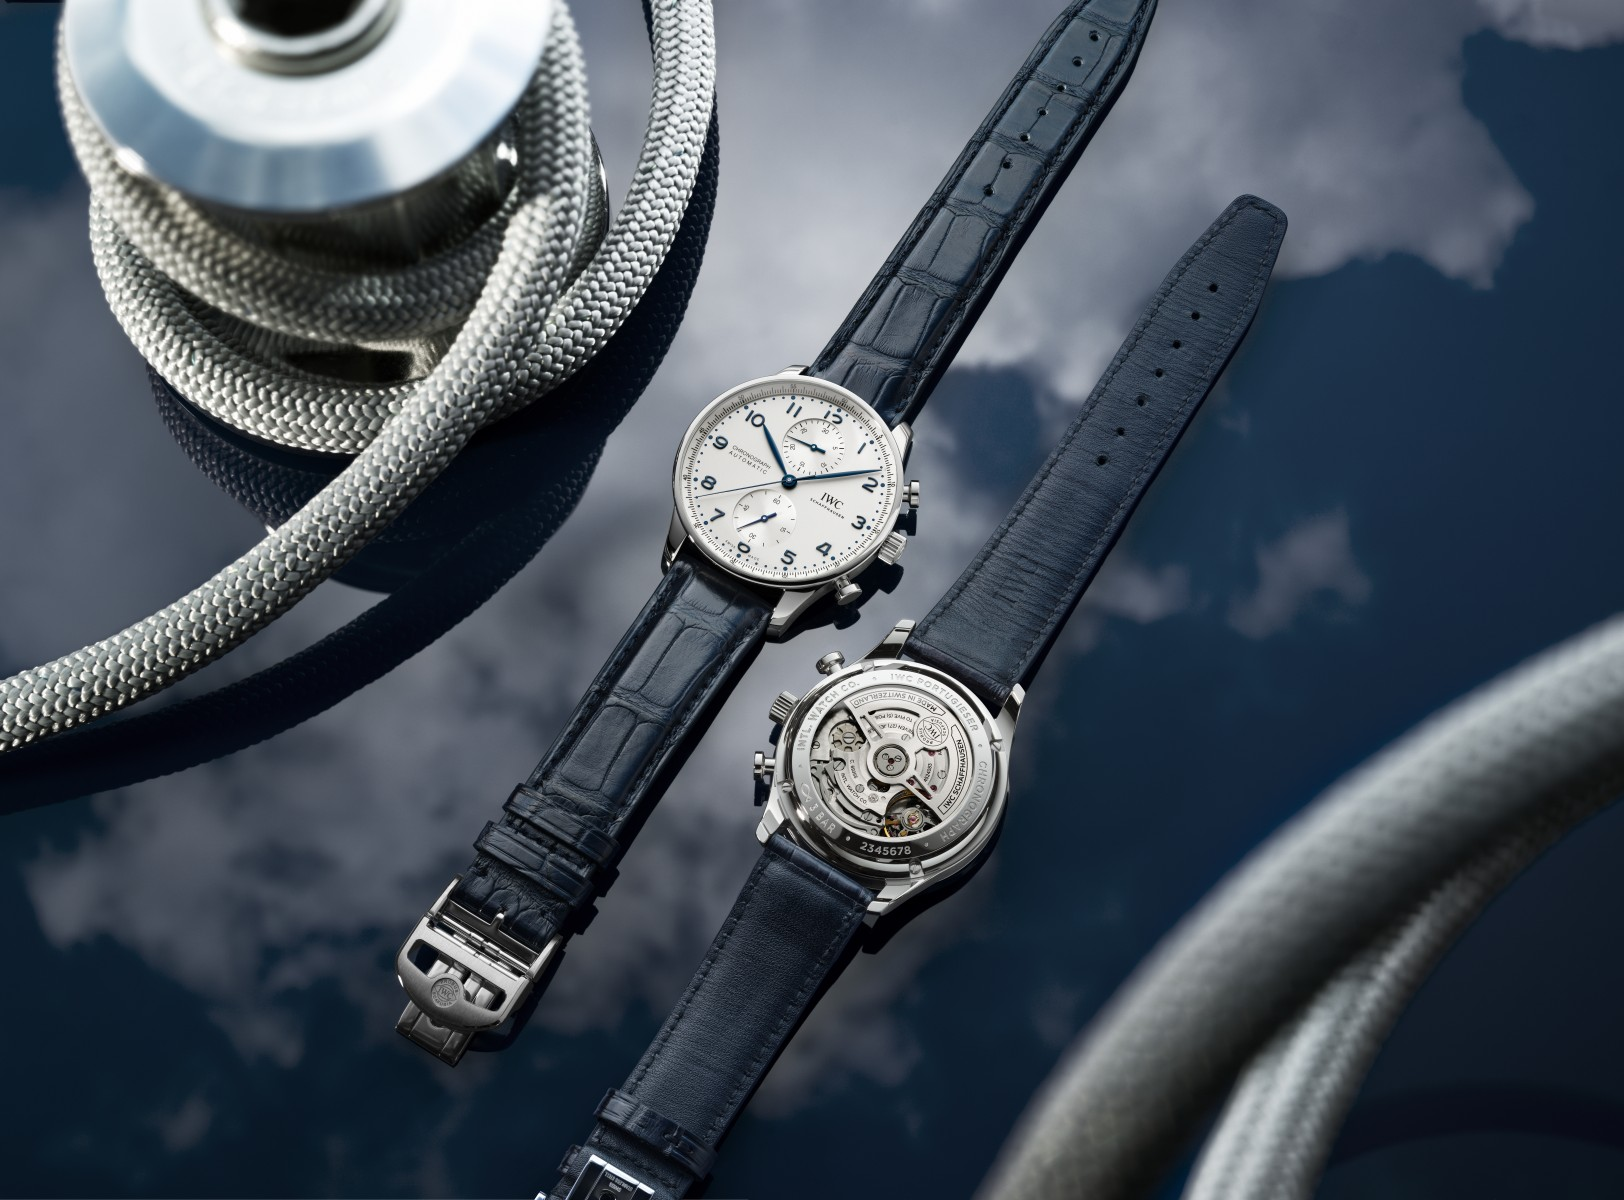 Portugieser Chronograph has new see-through back to view calibre mastery